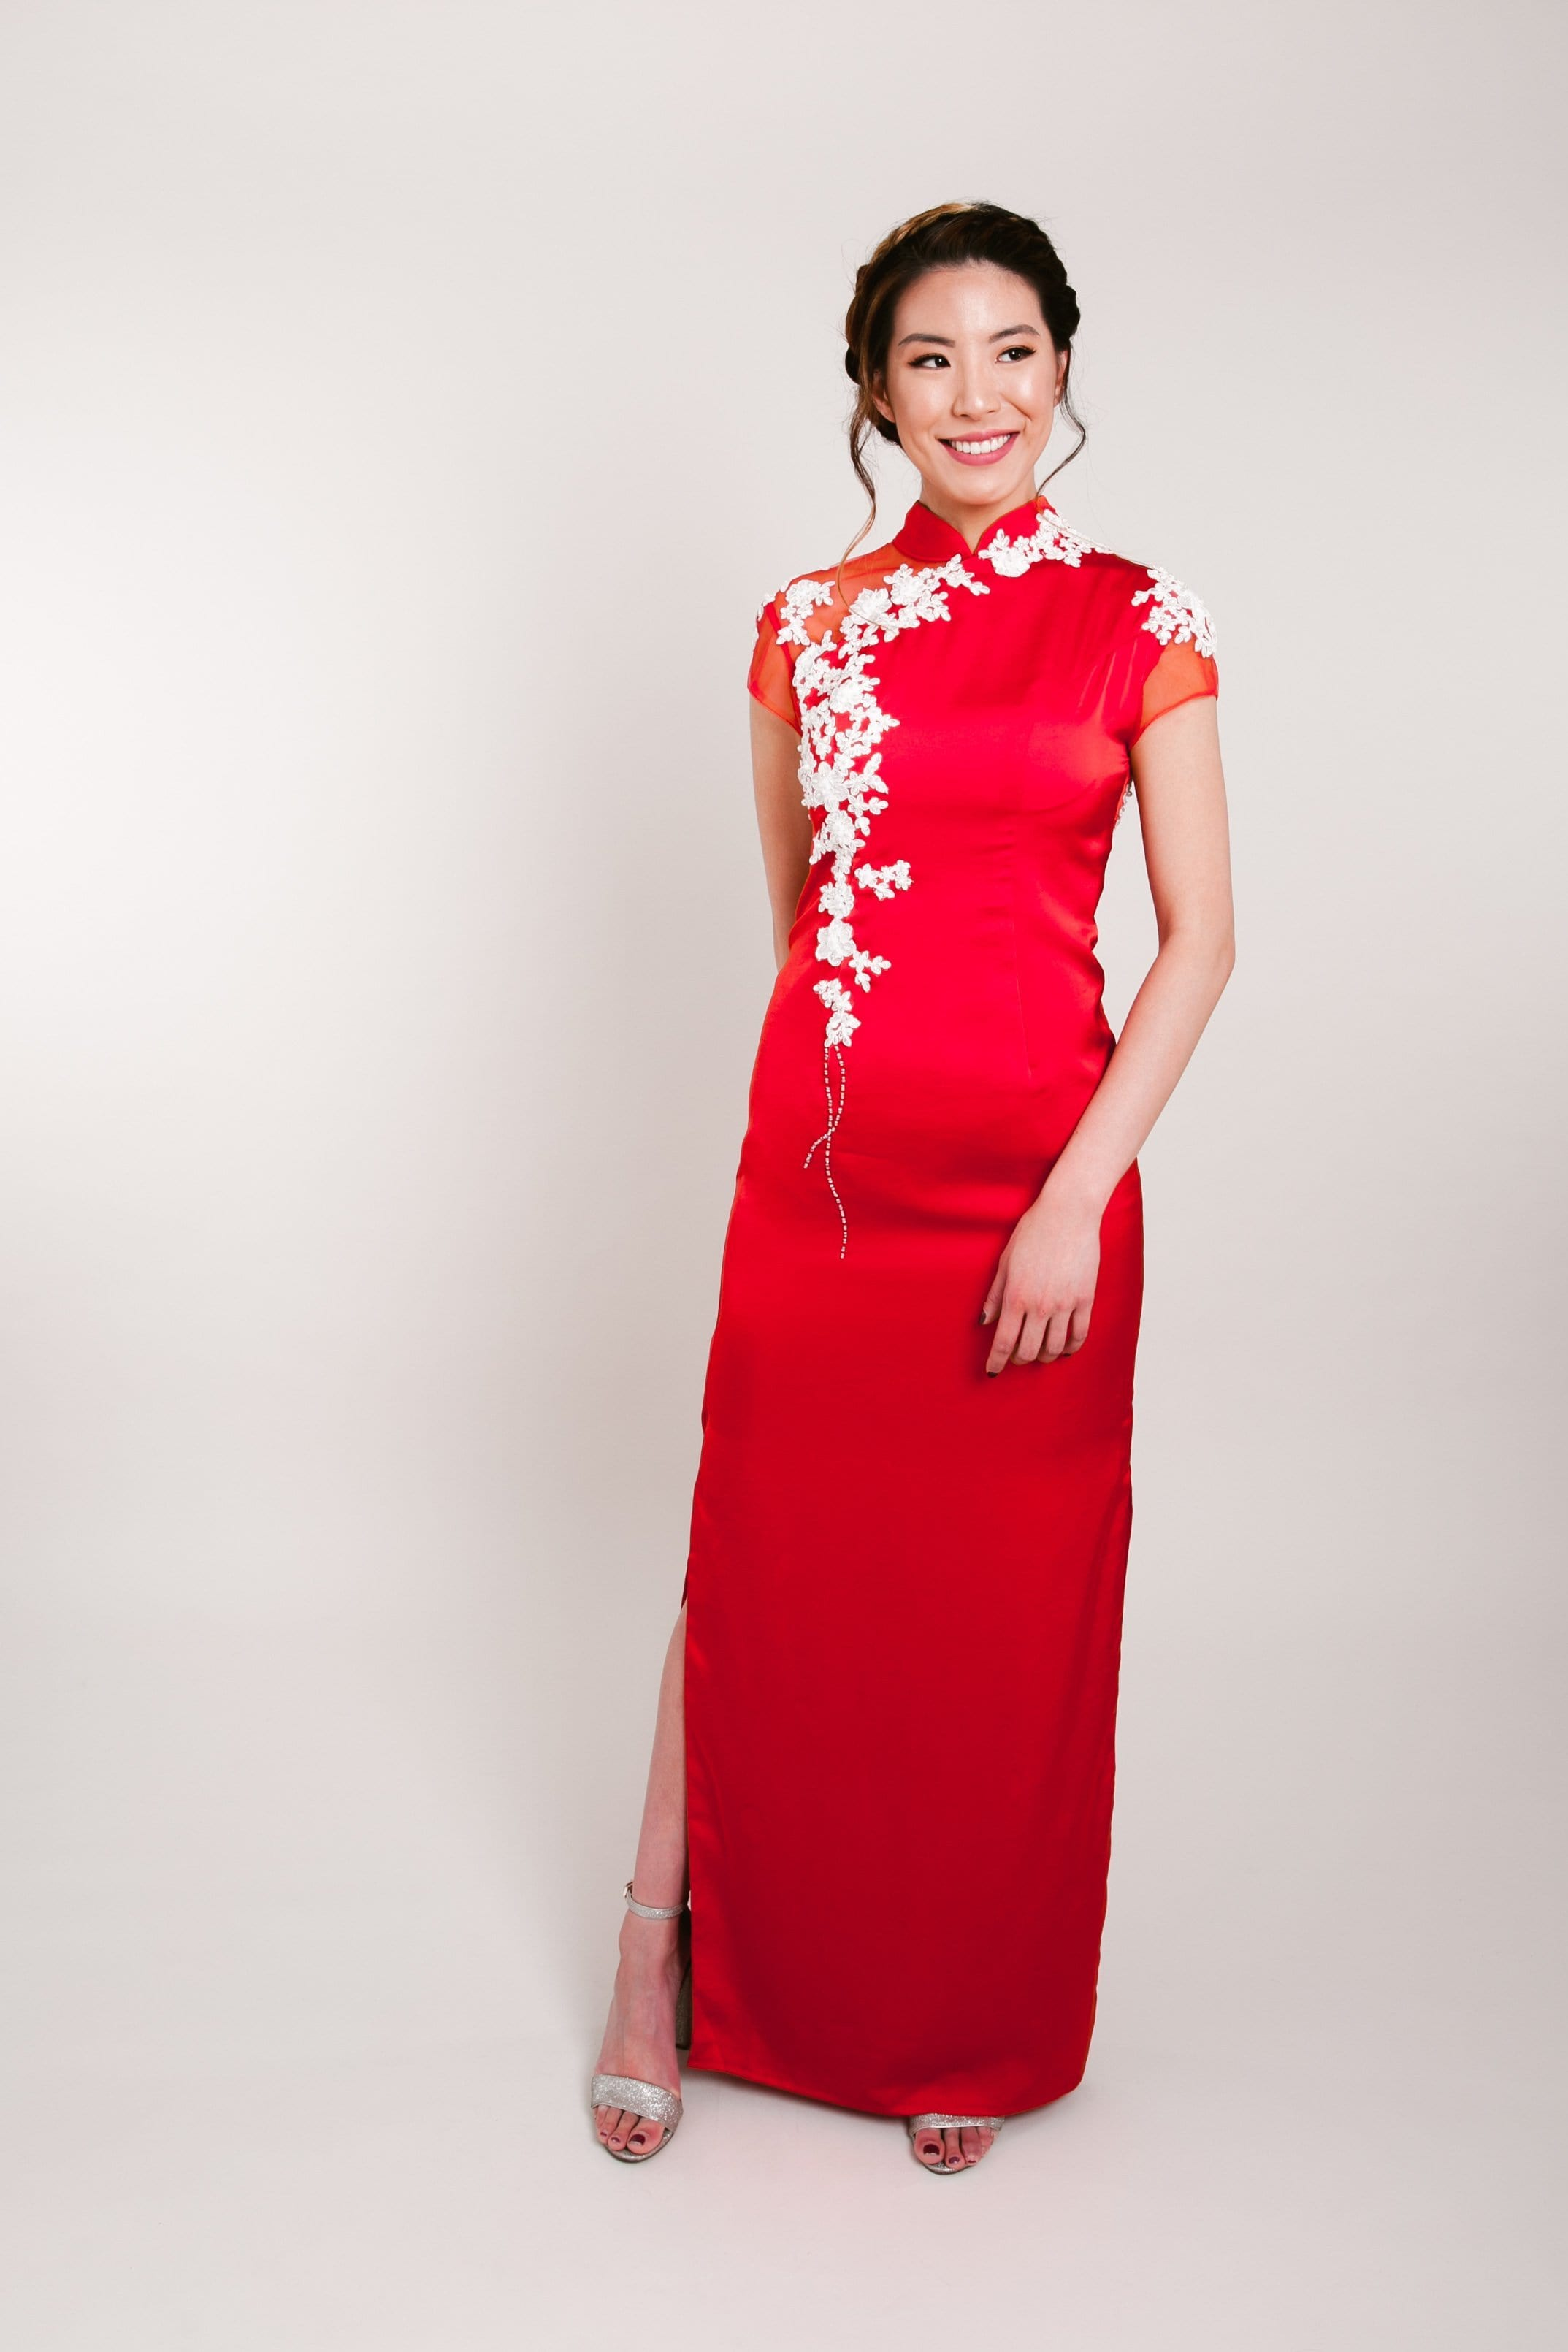 Michelle Bespoke Dress - Cheongsam - East Meets Dress